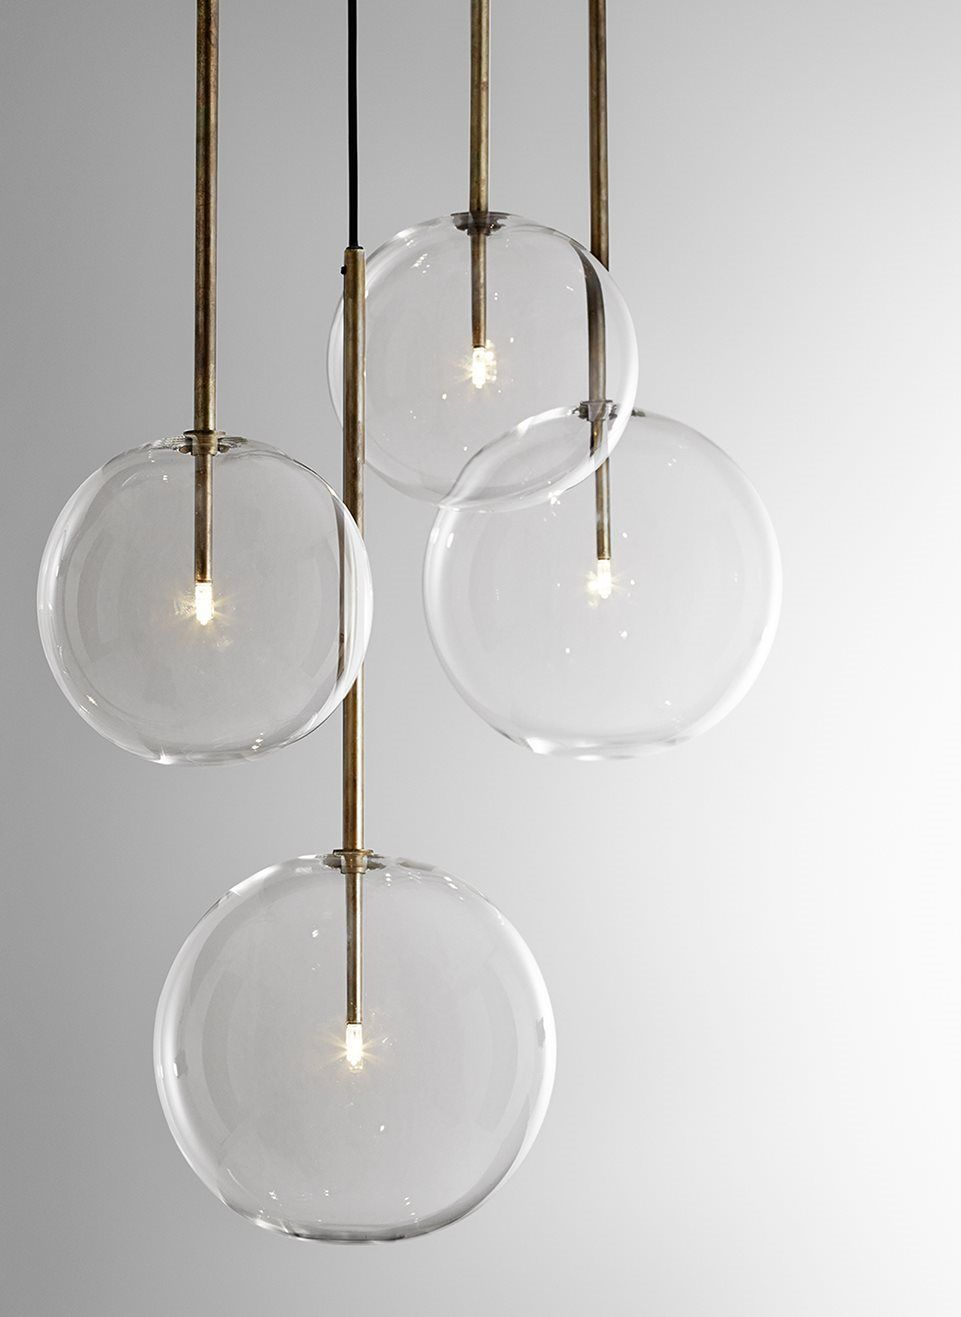 Bolle sola hanging lamp metal parts in hand burnished brass